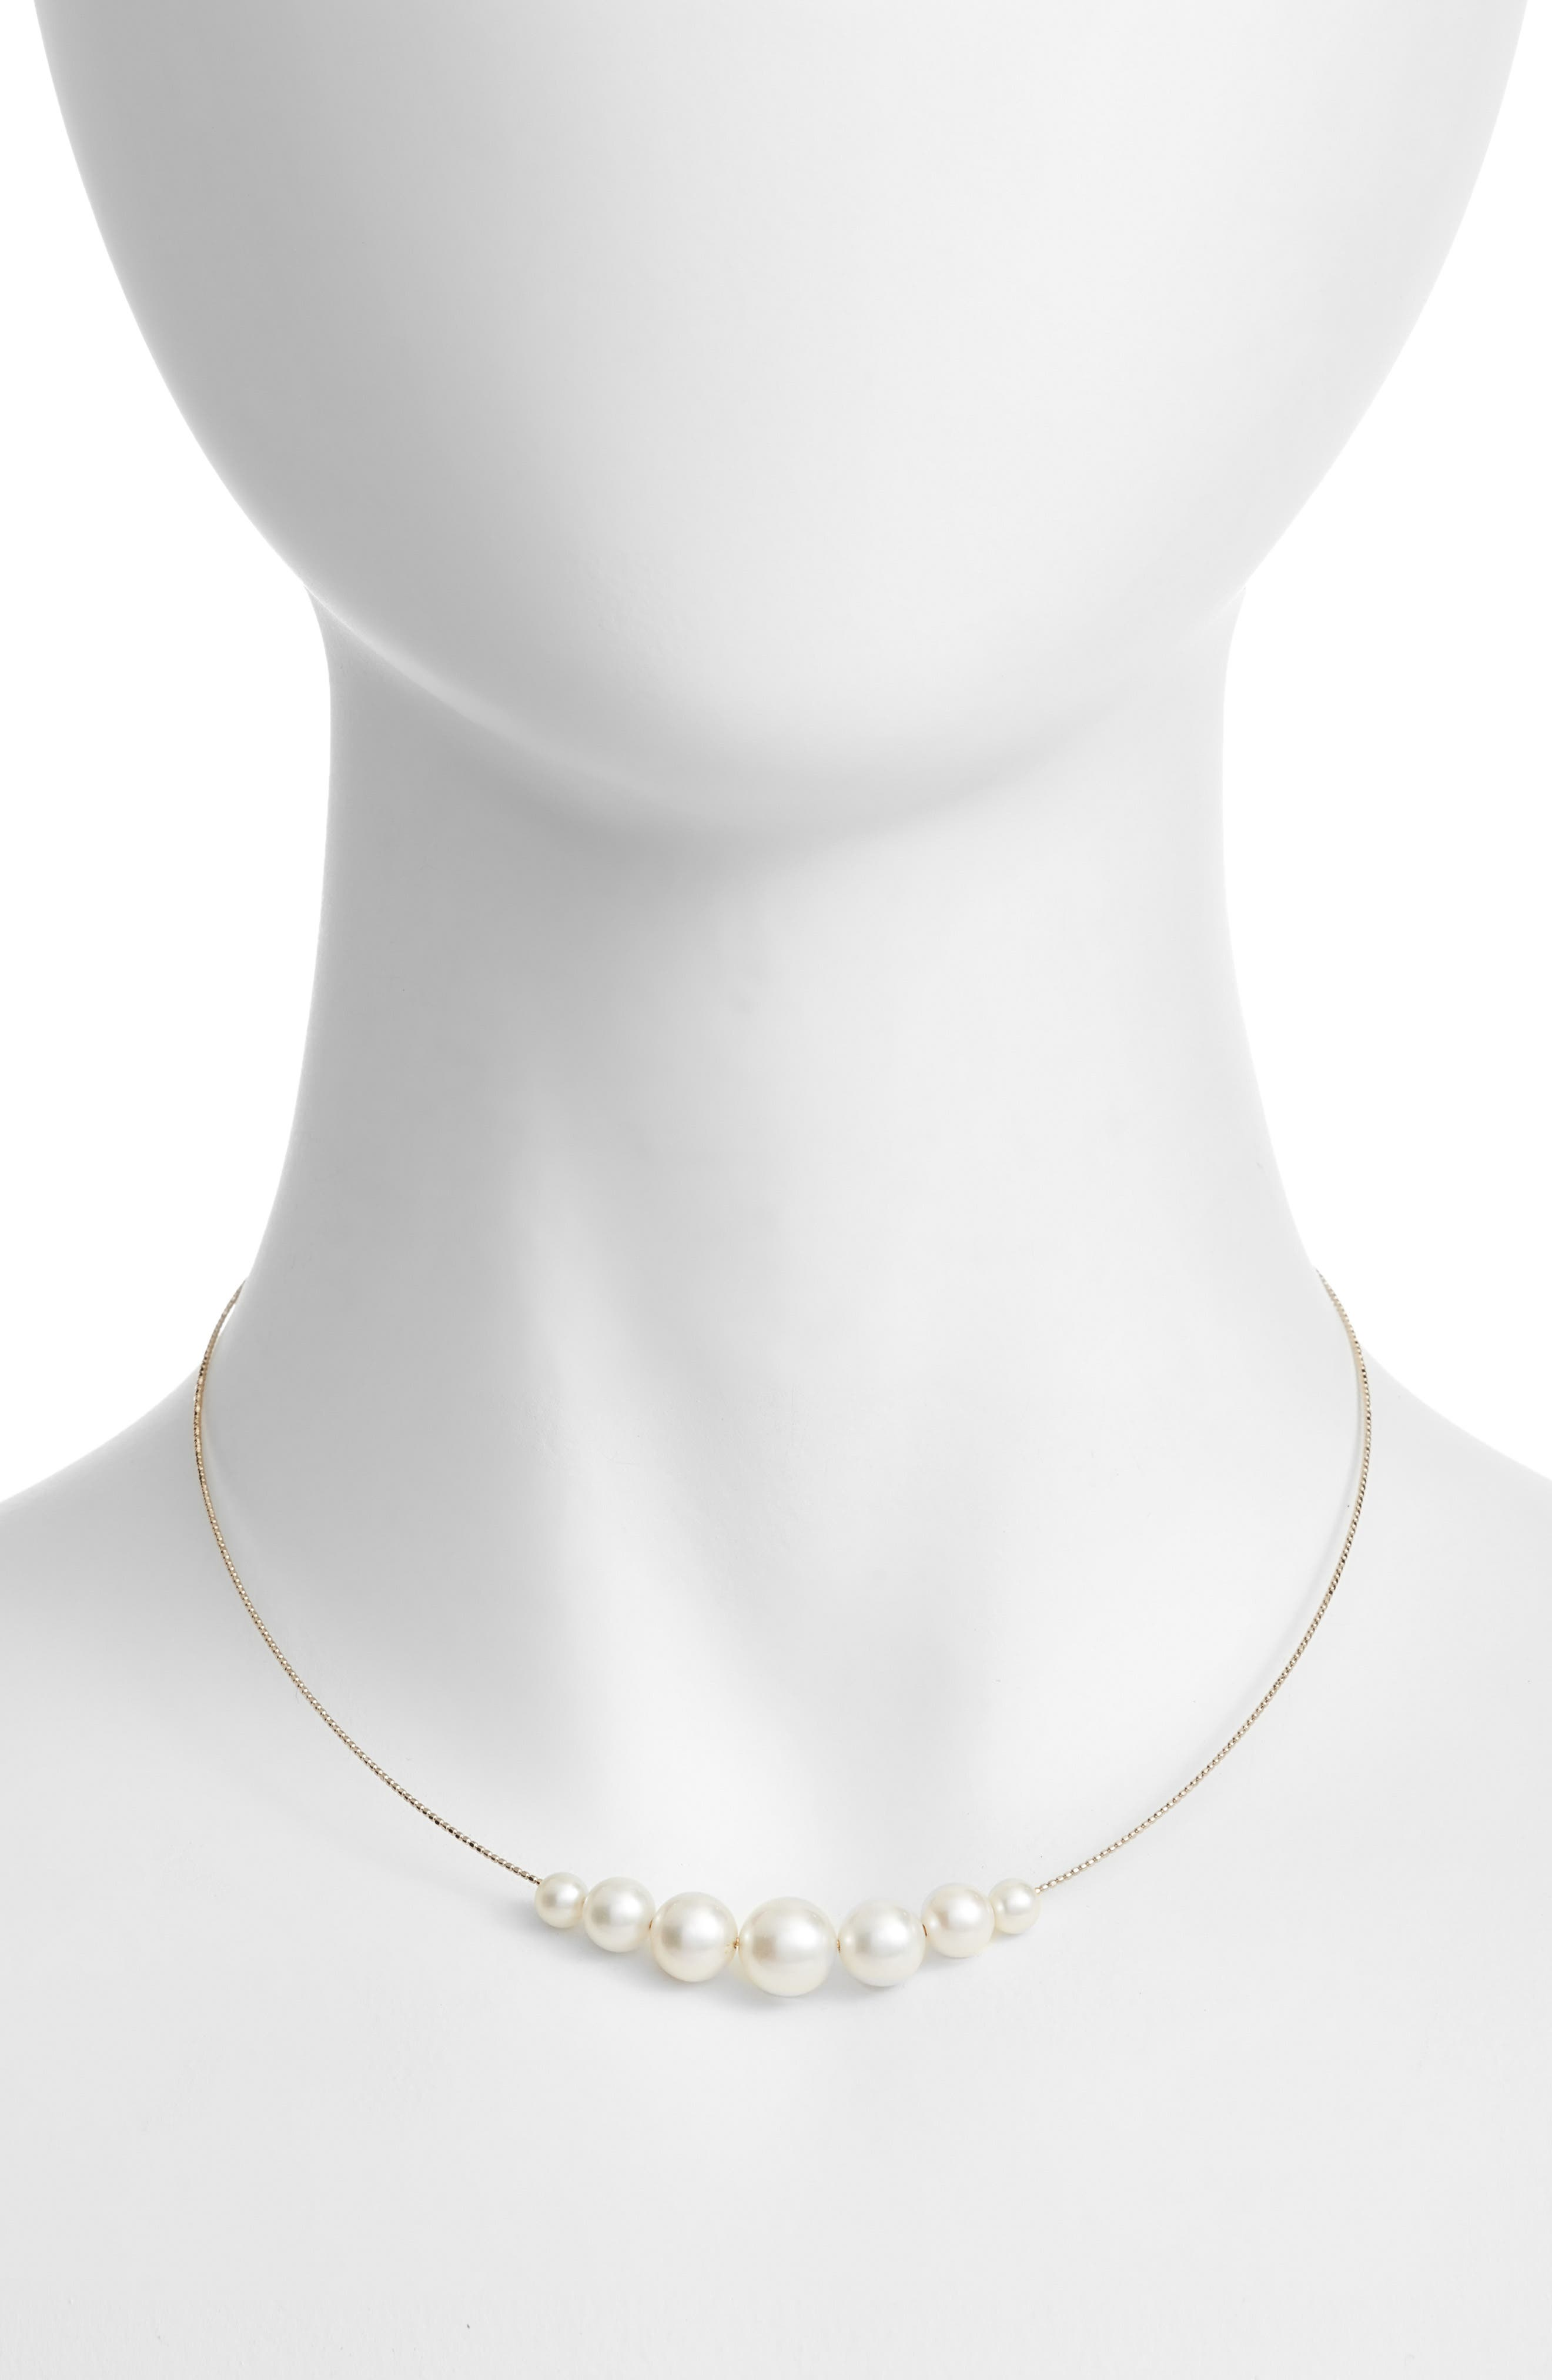 Pearl Choker Necklace,                         Main,                         color, YELLOW GOLD/ WHITE PEARL